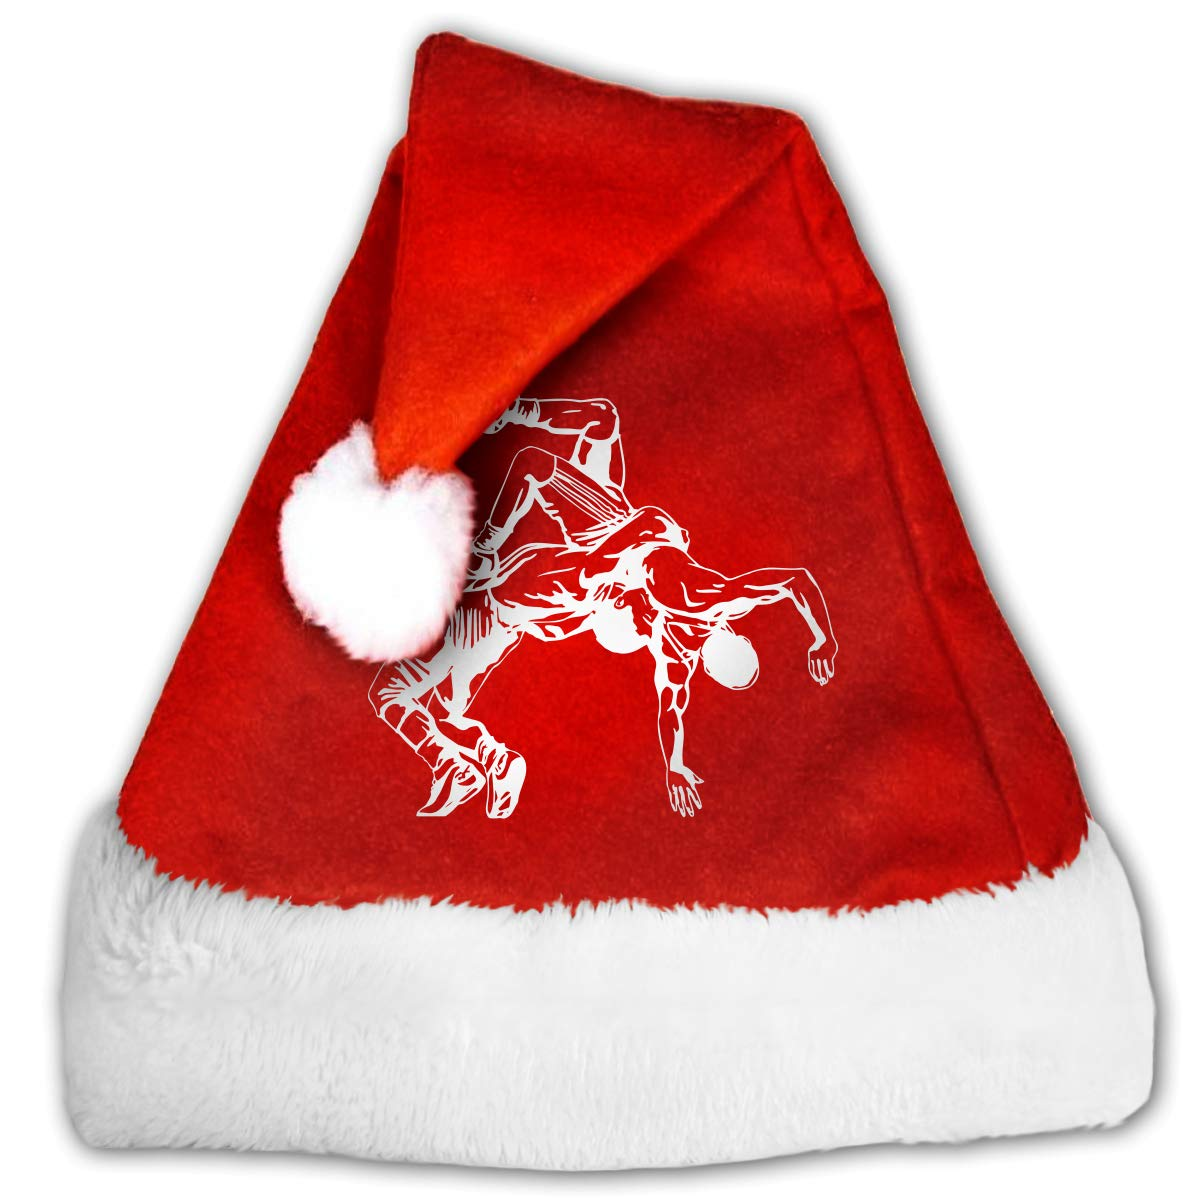 Amazon.com: SENG&26HAT Wrestling Clipart Christmas Xmas.